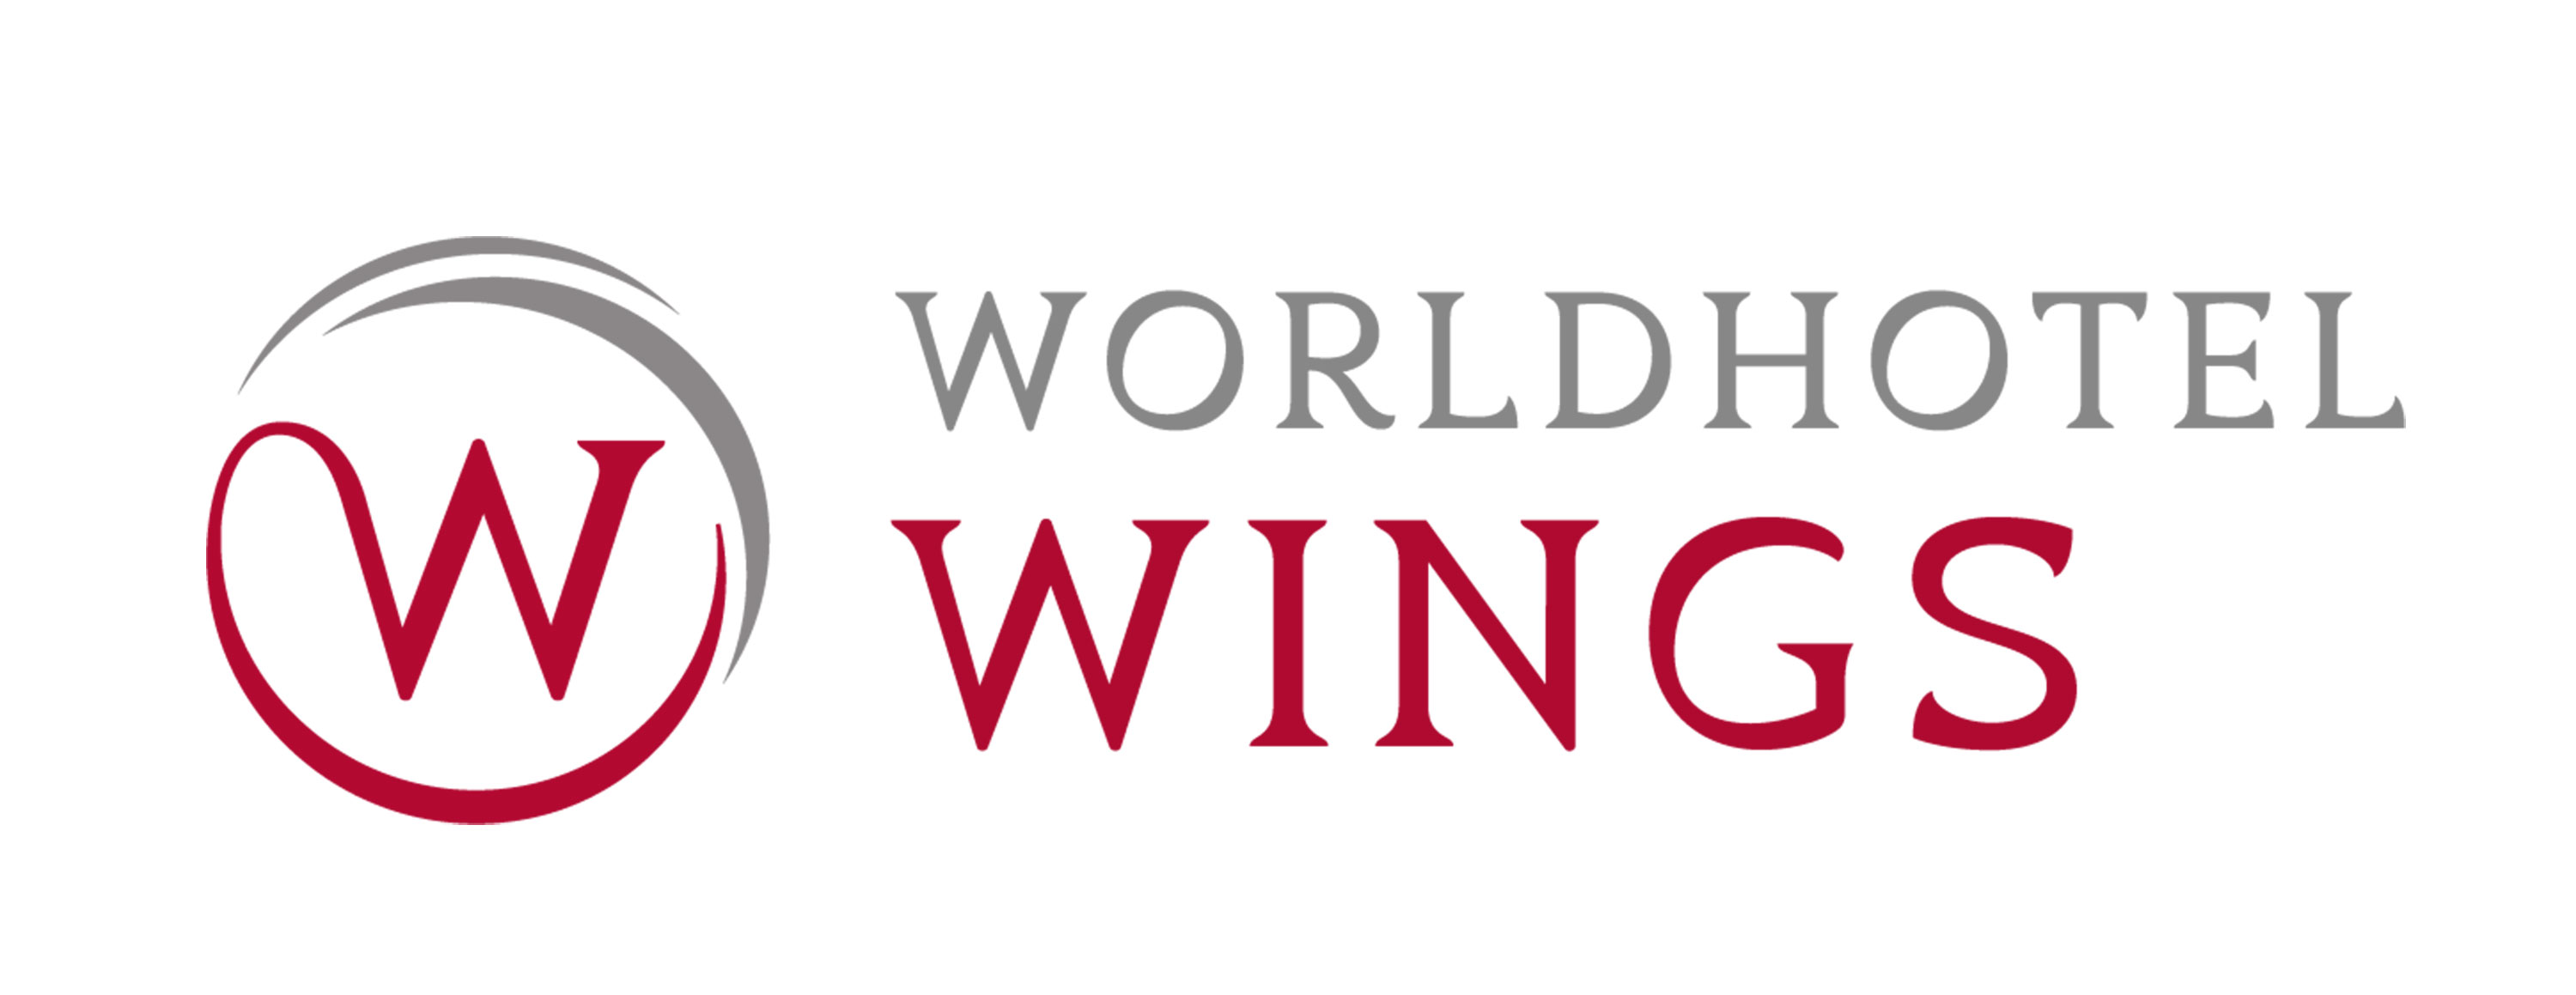 /public/image/logos/worldhotel-wings-logo---no-airport.jpg